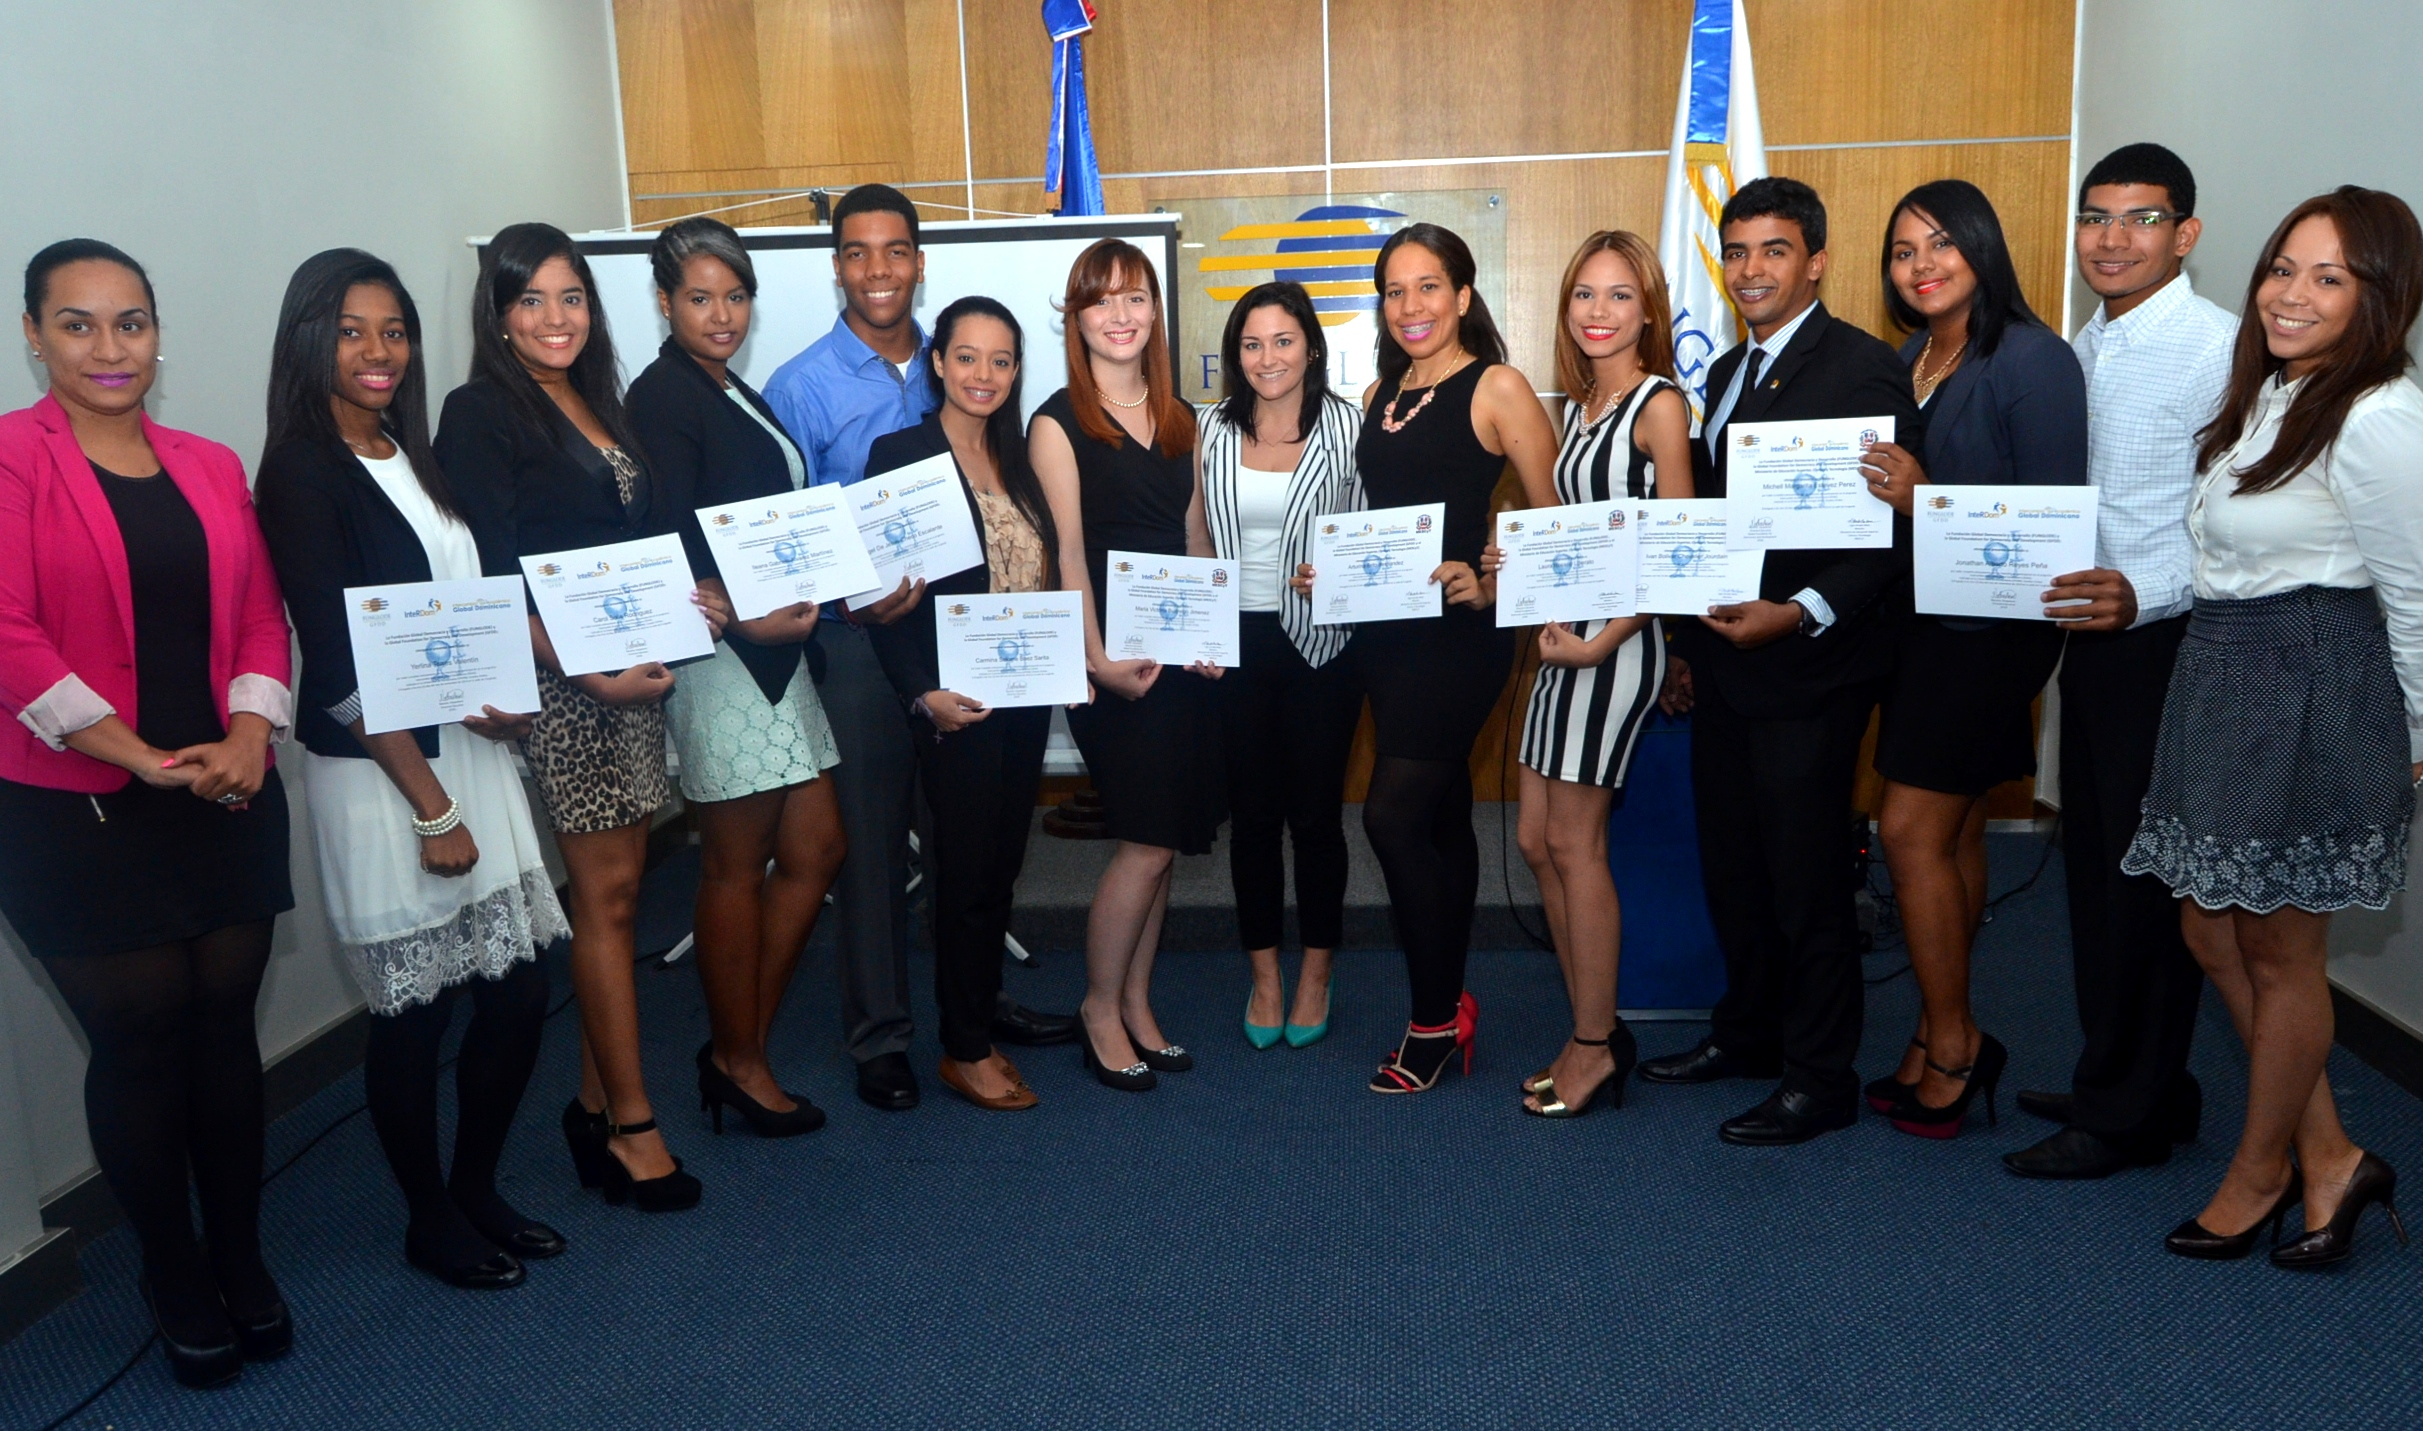 All student participants in fall GDAE programs receive their certificates from GDAE staff.